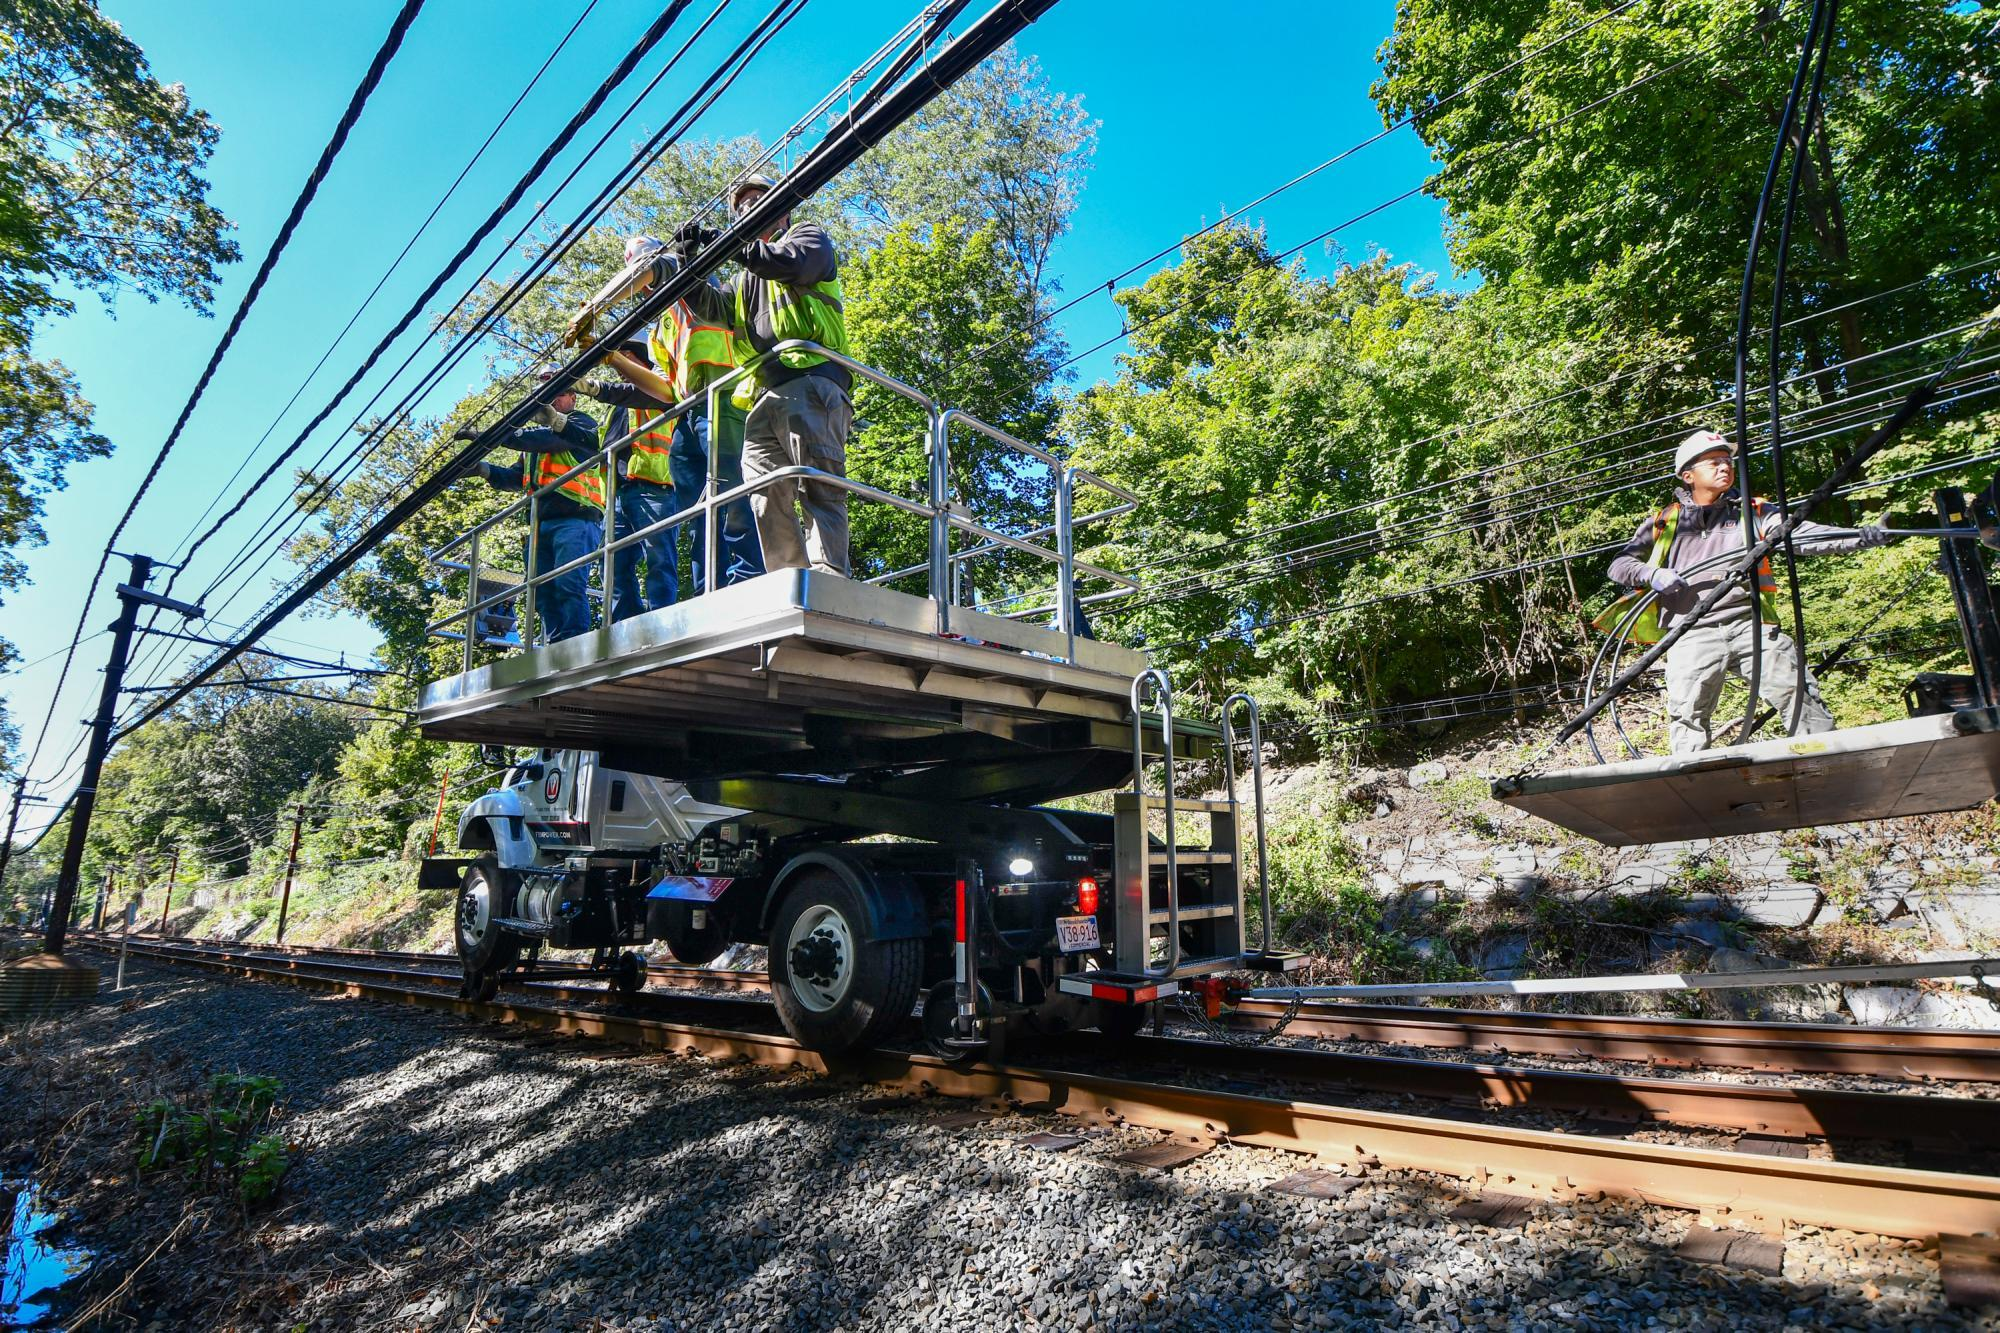 A team of workers install new signal cables near Chestnut Hill on the Green Line D branch.